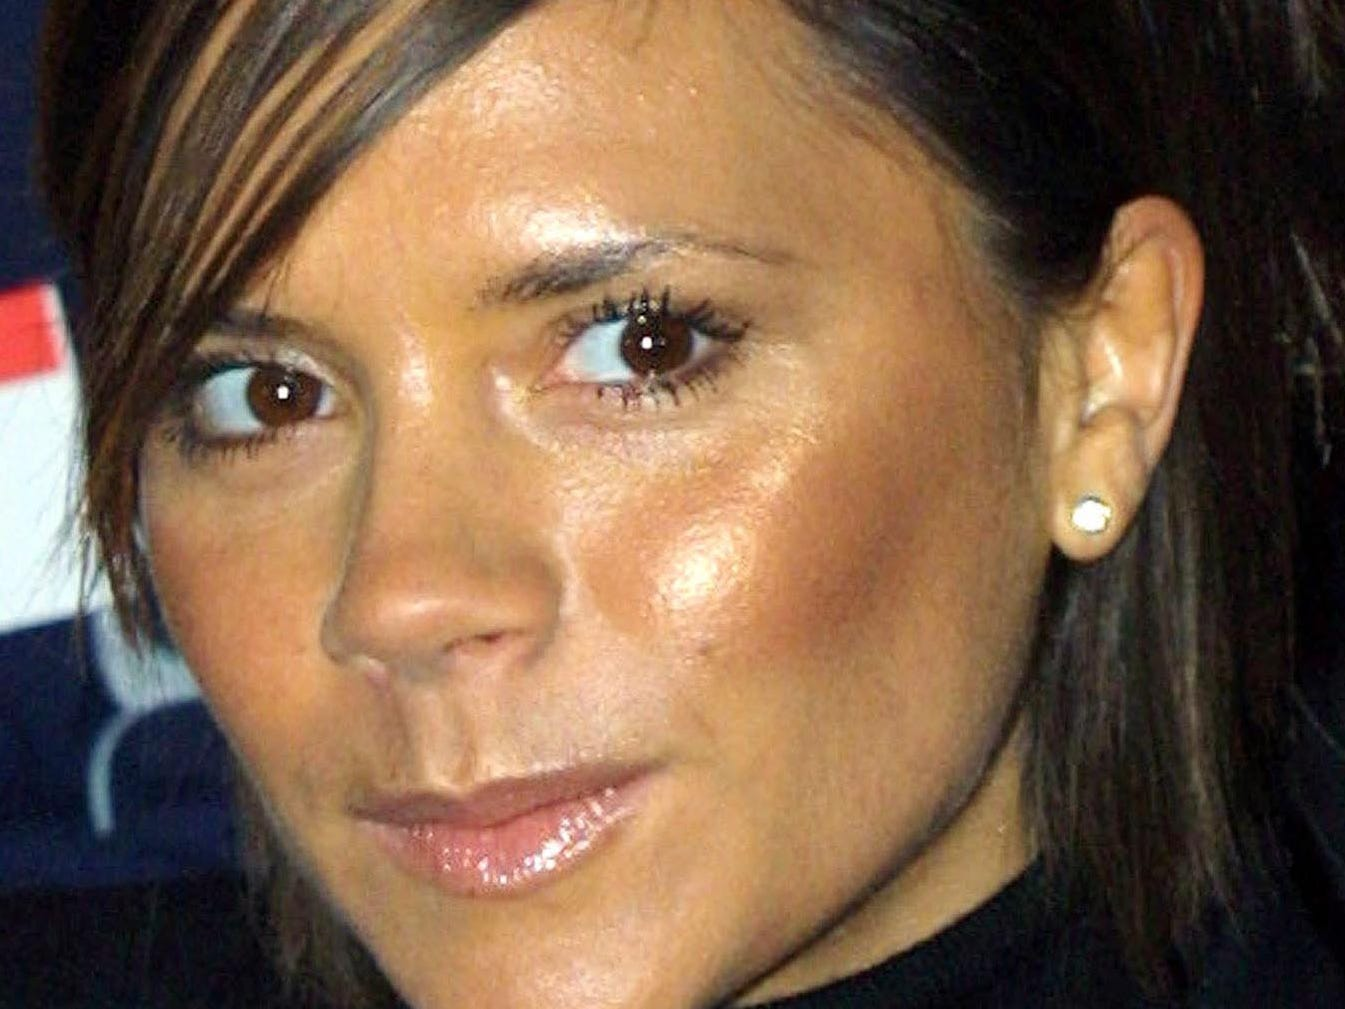 Victoria Beckham who was known as Posh Spice sold only one solo album but quickly became a fashion icon.